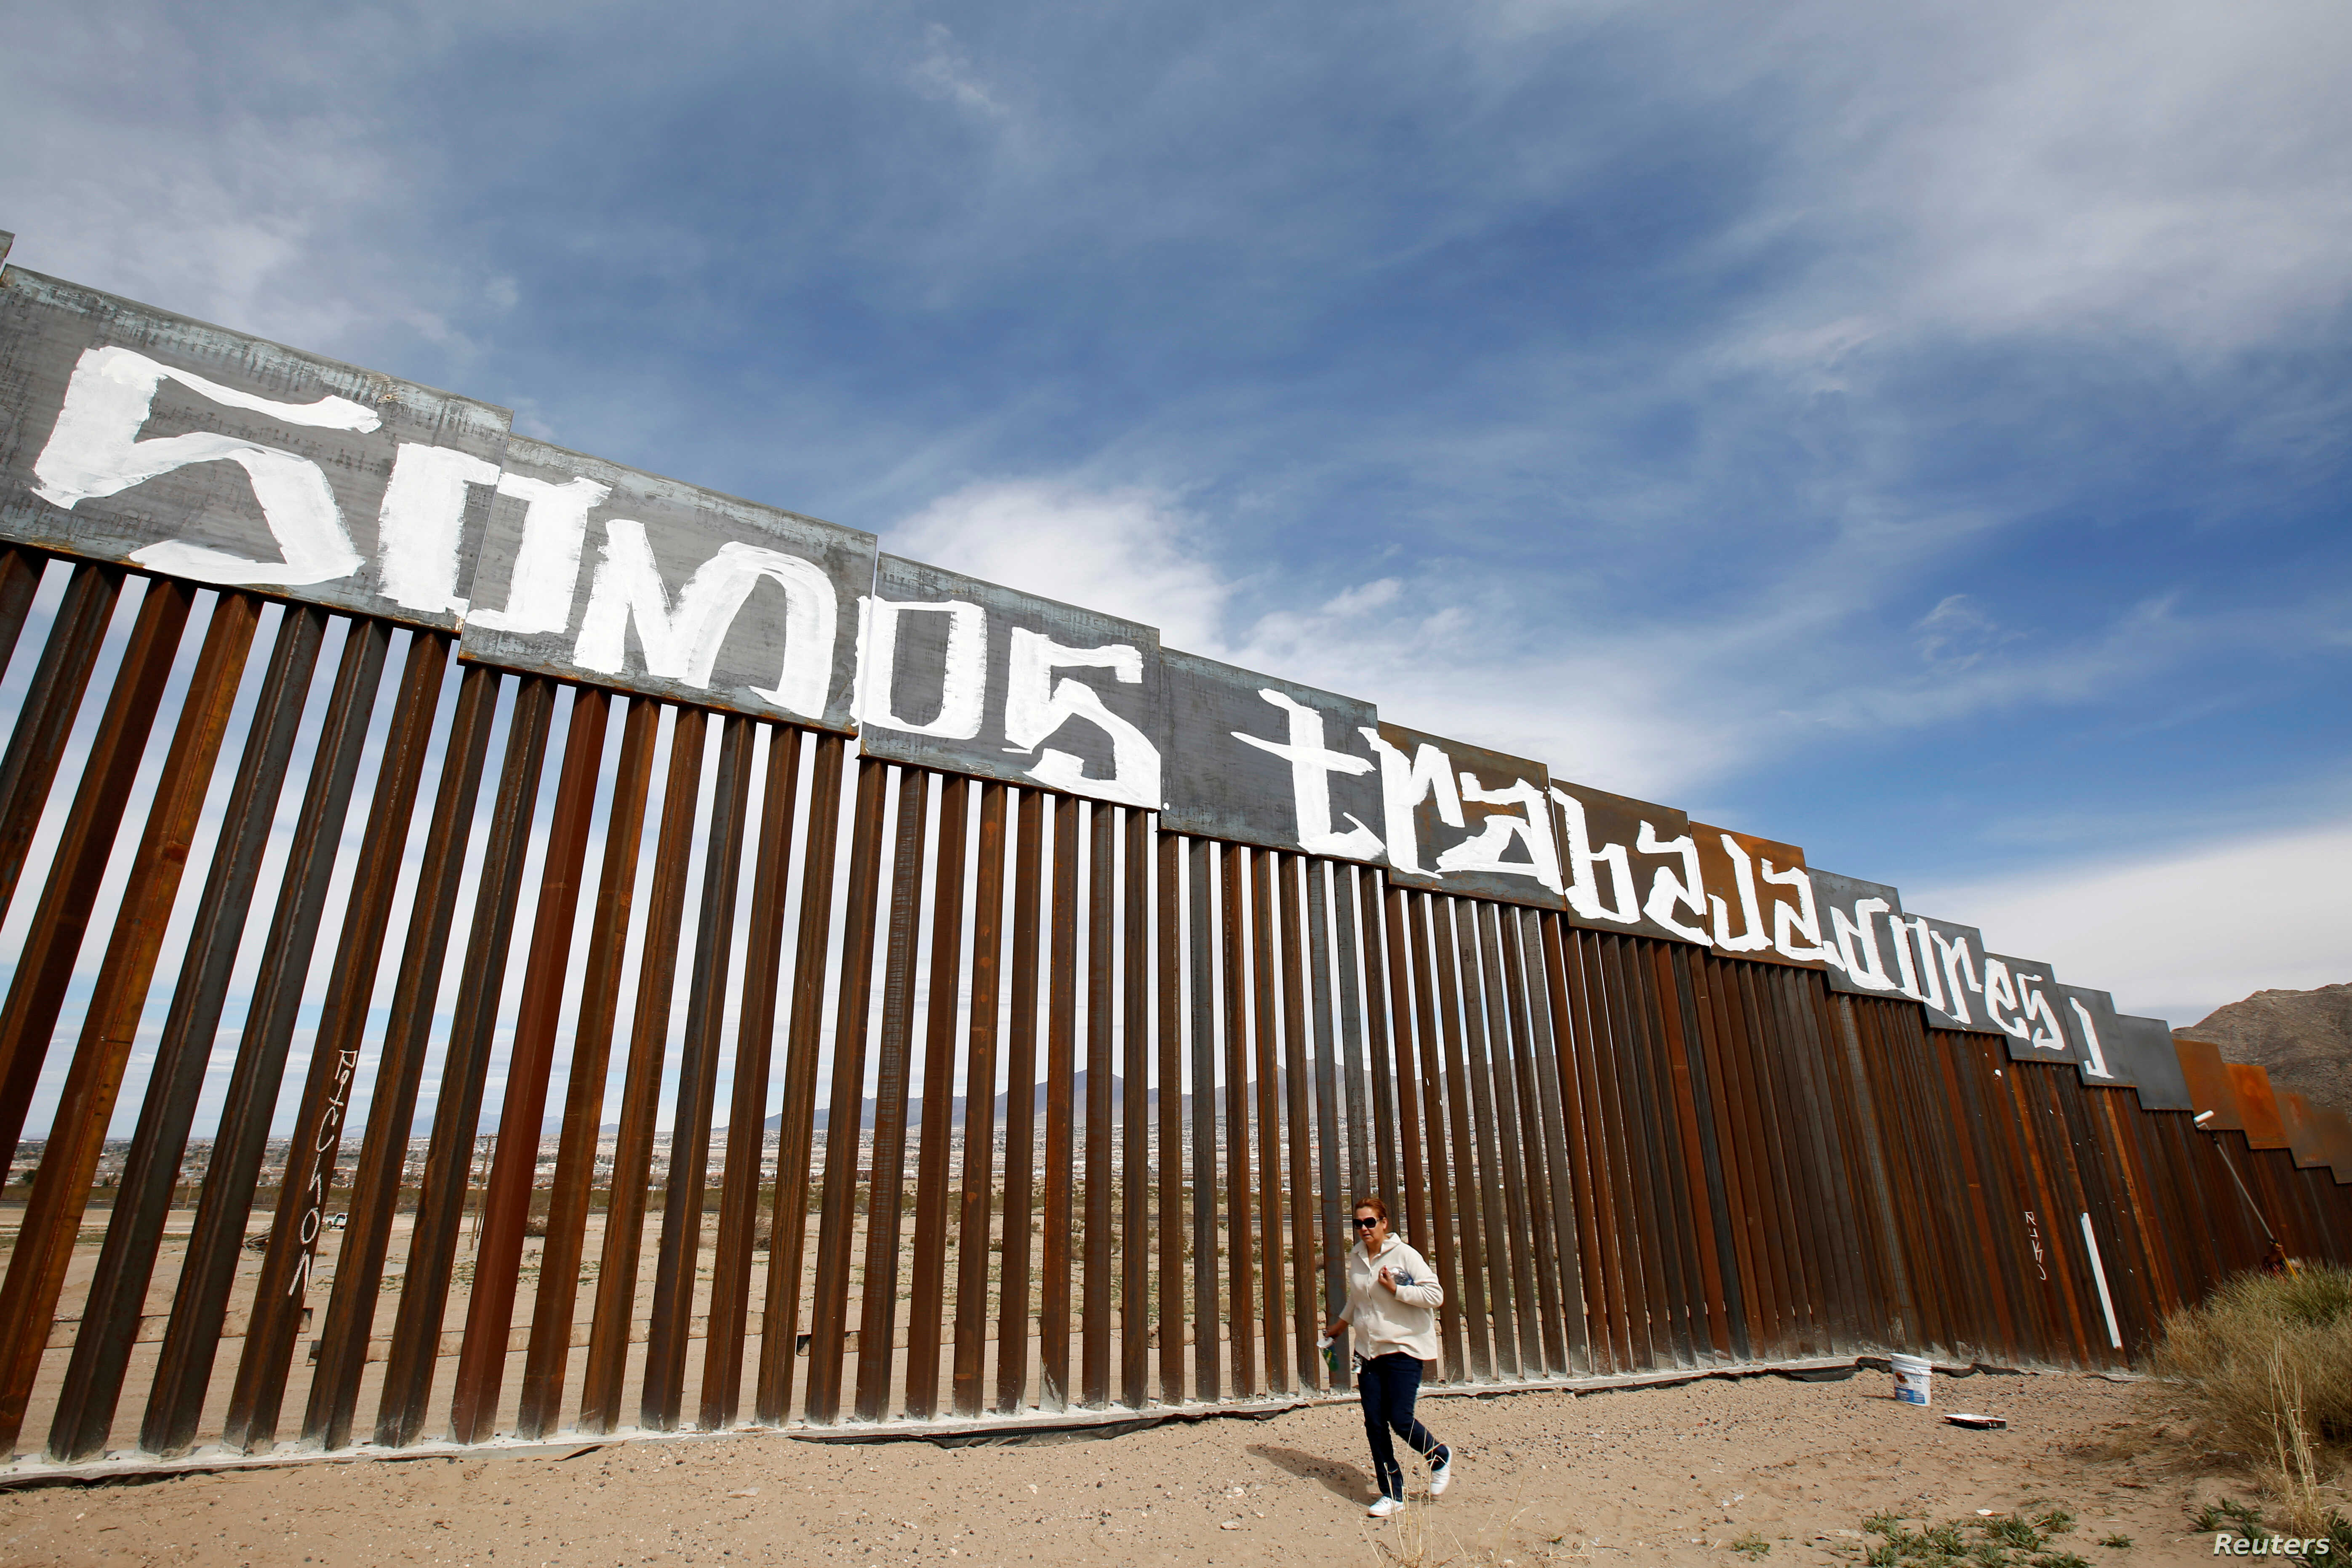 """A group of activists paints the U.S.-Mexico border wall between Ciudad Juarez and New Mexico as a symbol of protest against U.S. President Donald Trump's new immigration reform in Ciudad Juarez, Mexico, Feb. 26, 2017. The paint reads """"We are workers...."""